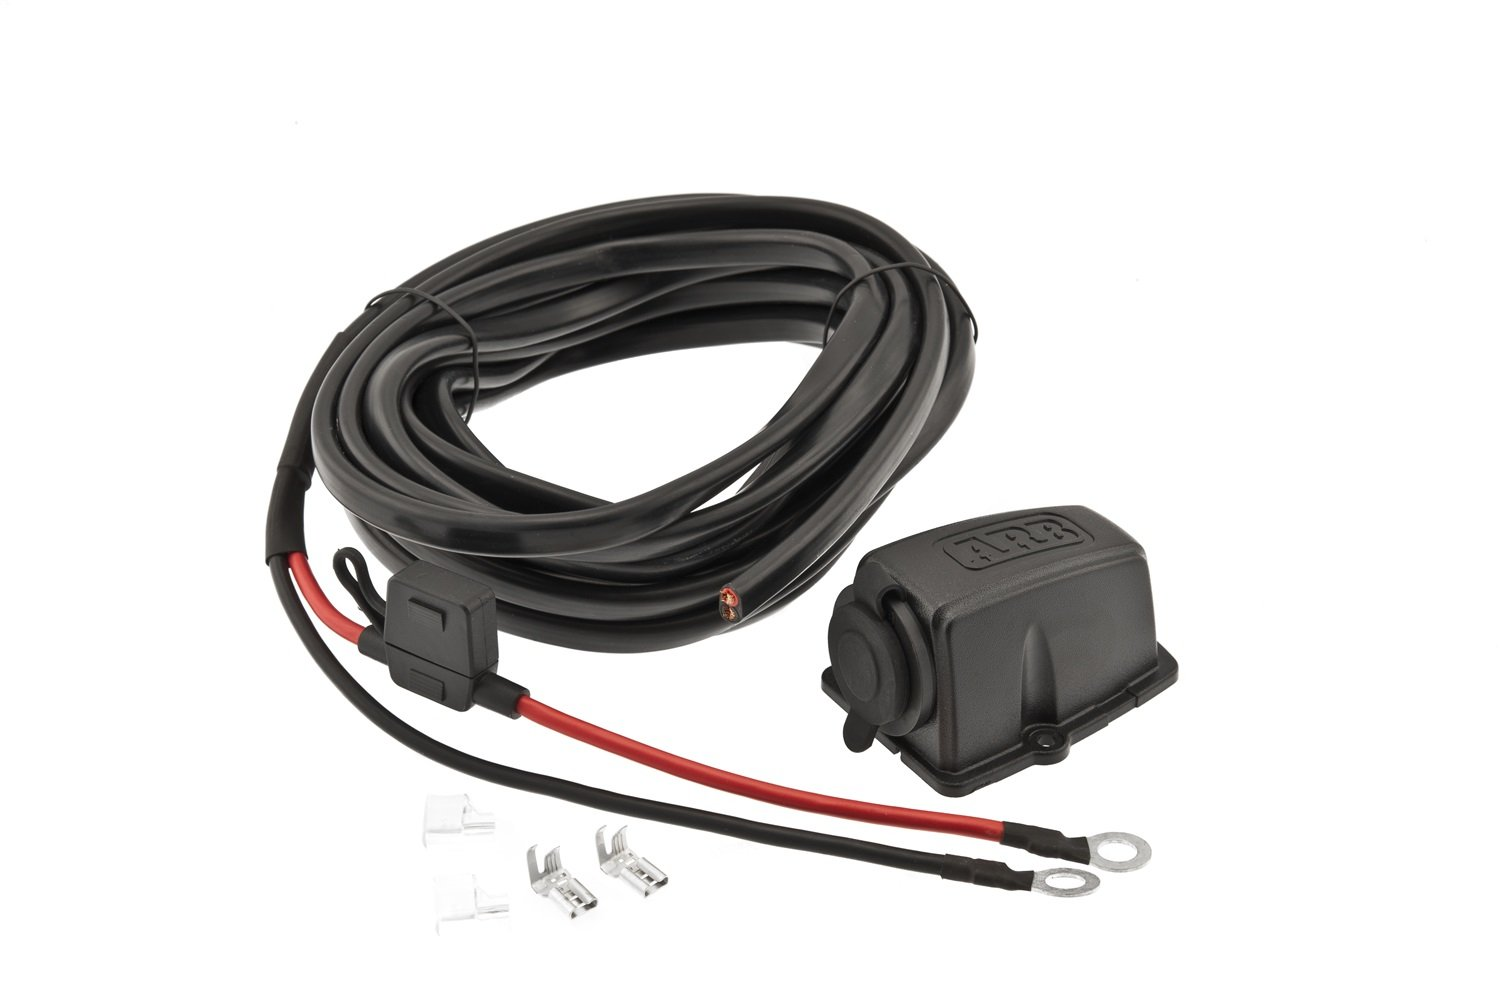 6110edDFPfL._SL1500_ amazon com arb 10900027 12 24v dc wiring kit for refrigerator arb fridge wiring harness at gsmx.co